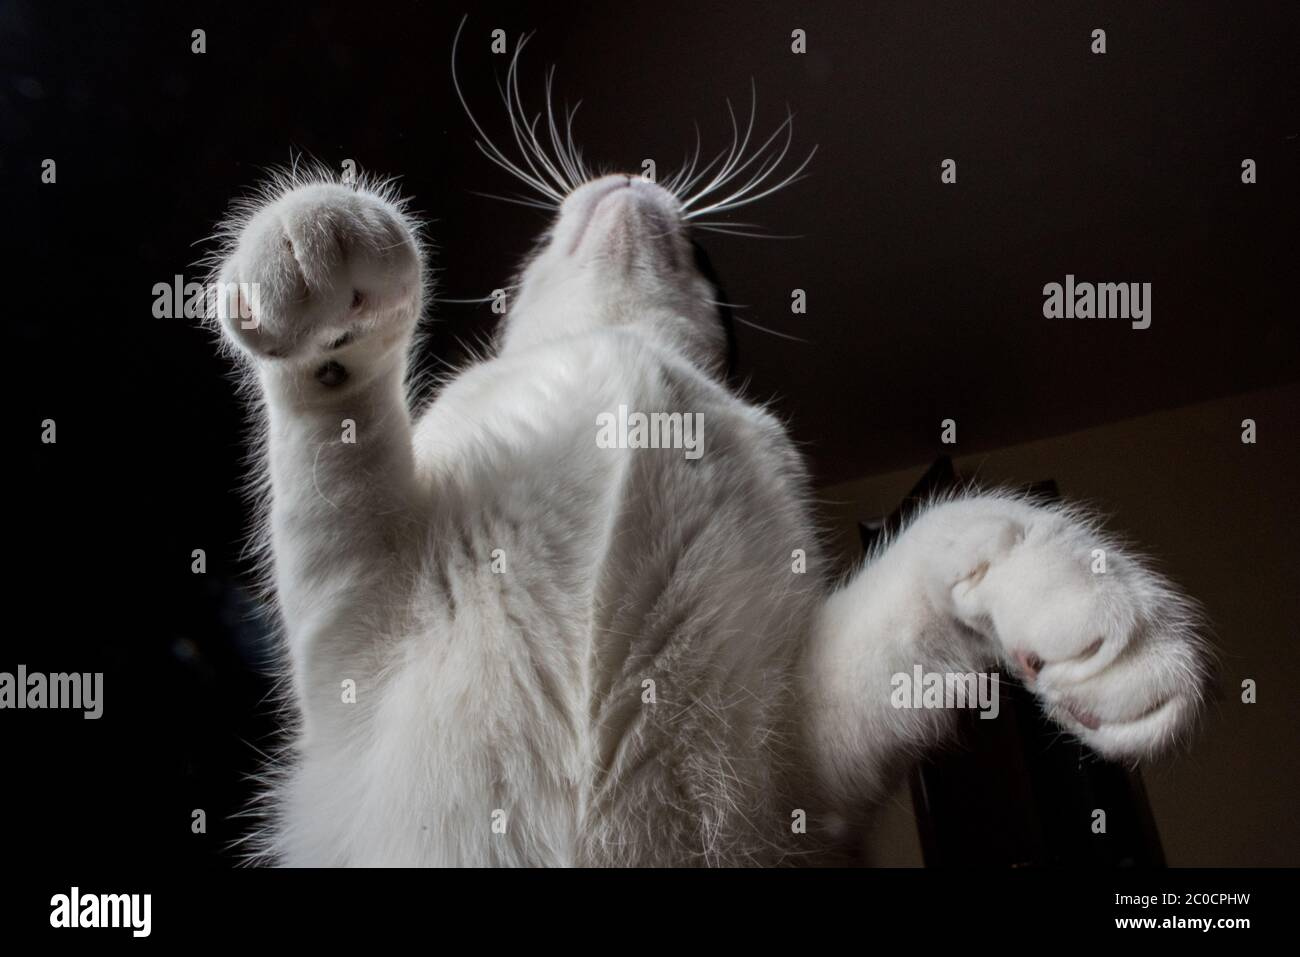 A black and white cat seen from below Stock Photo